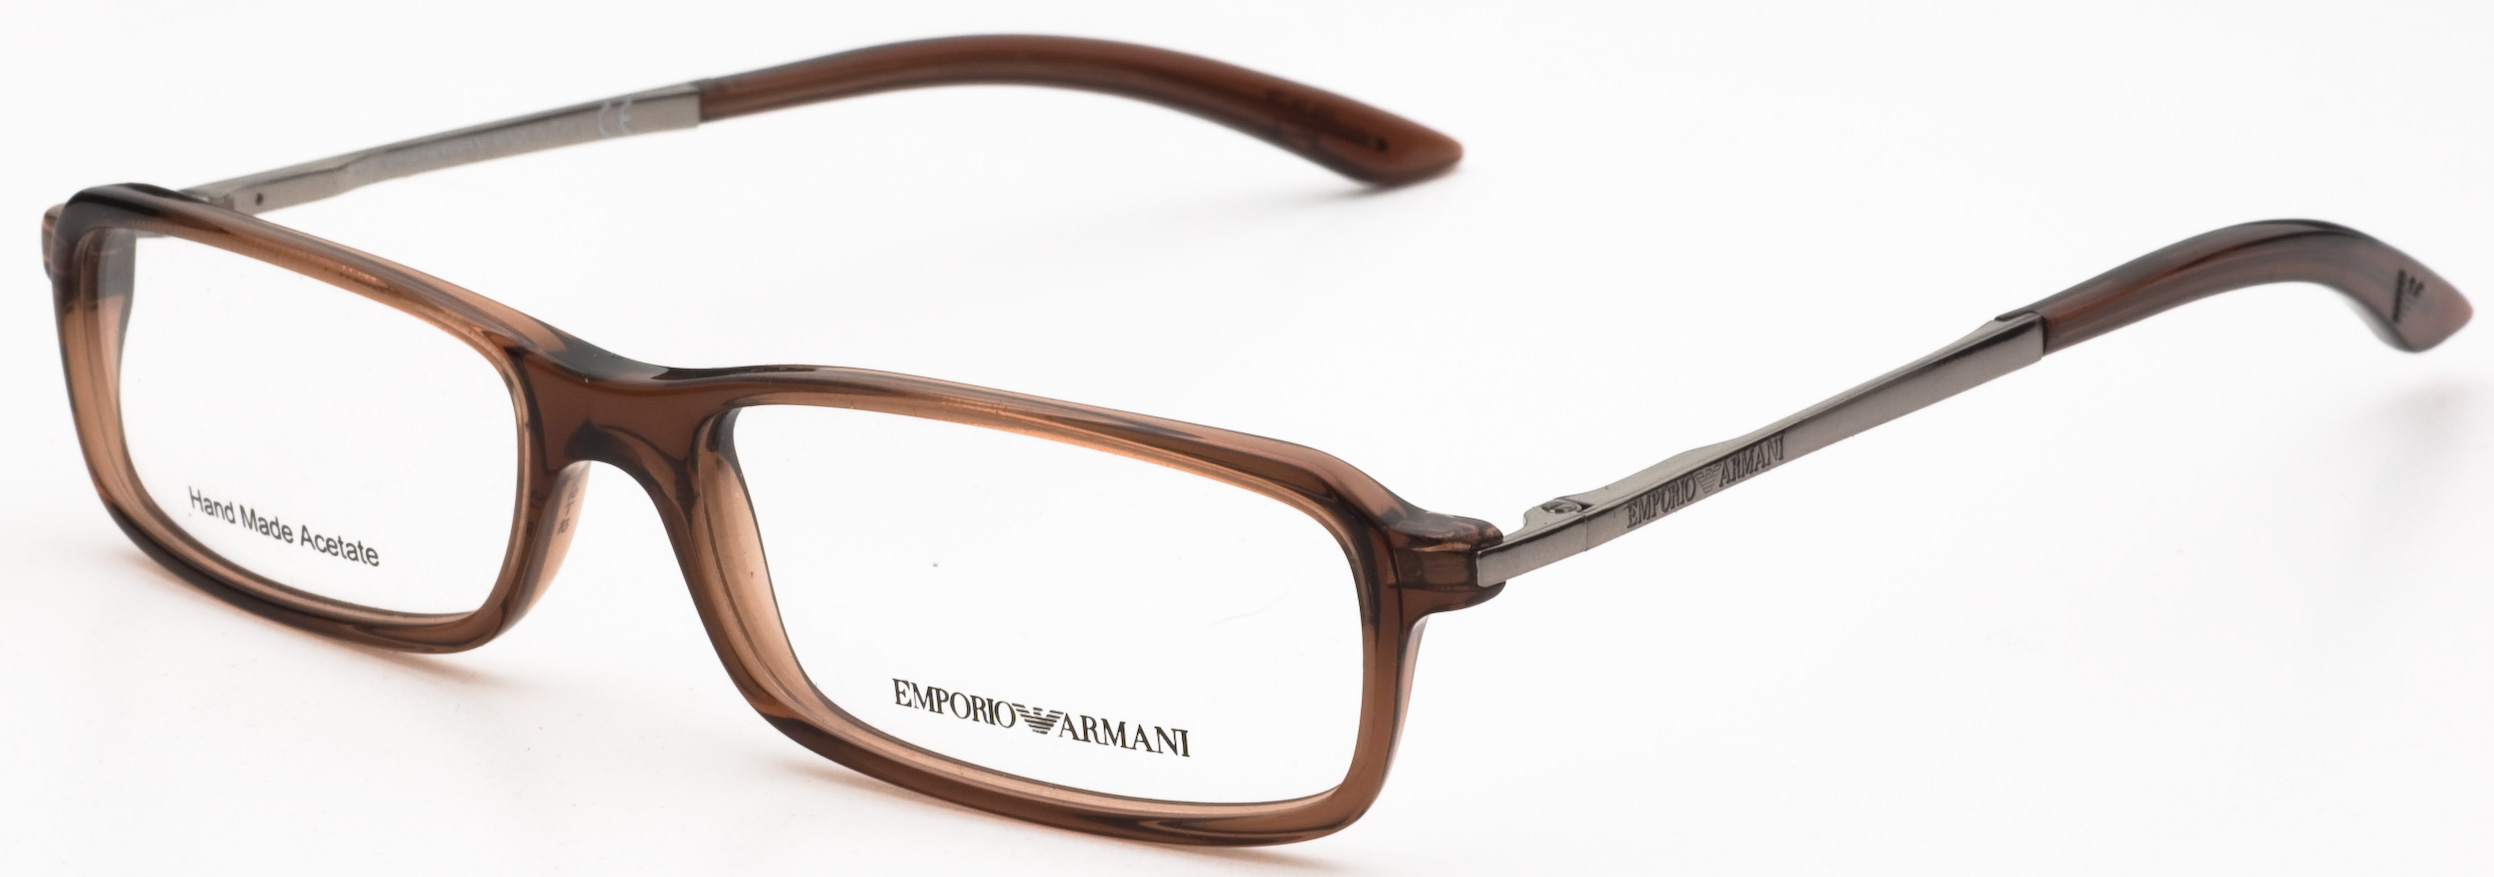 33a684c6cdc Eyeglasses - Most Popular Lifetime-Eyecare.com has the most ...